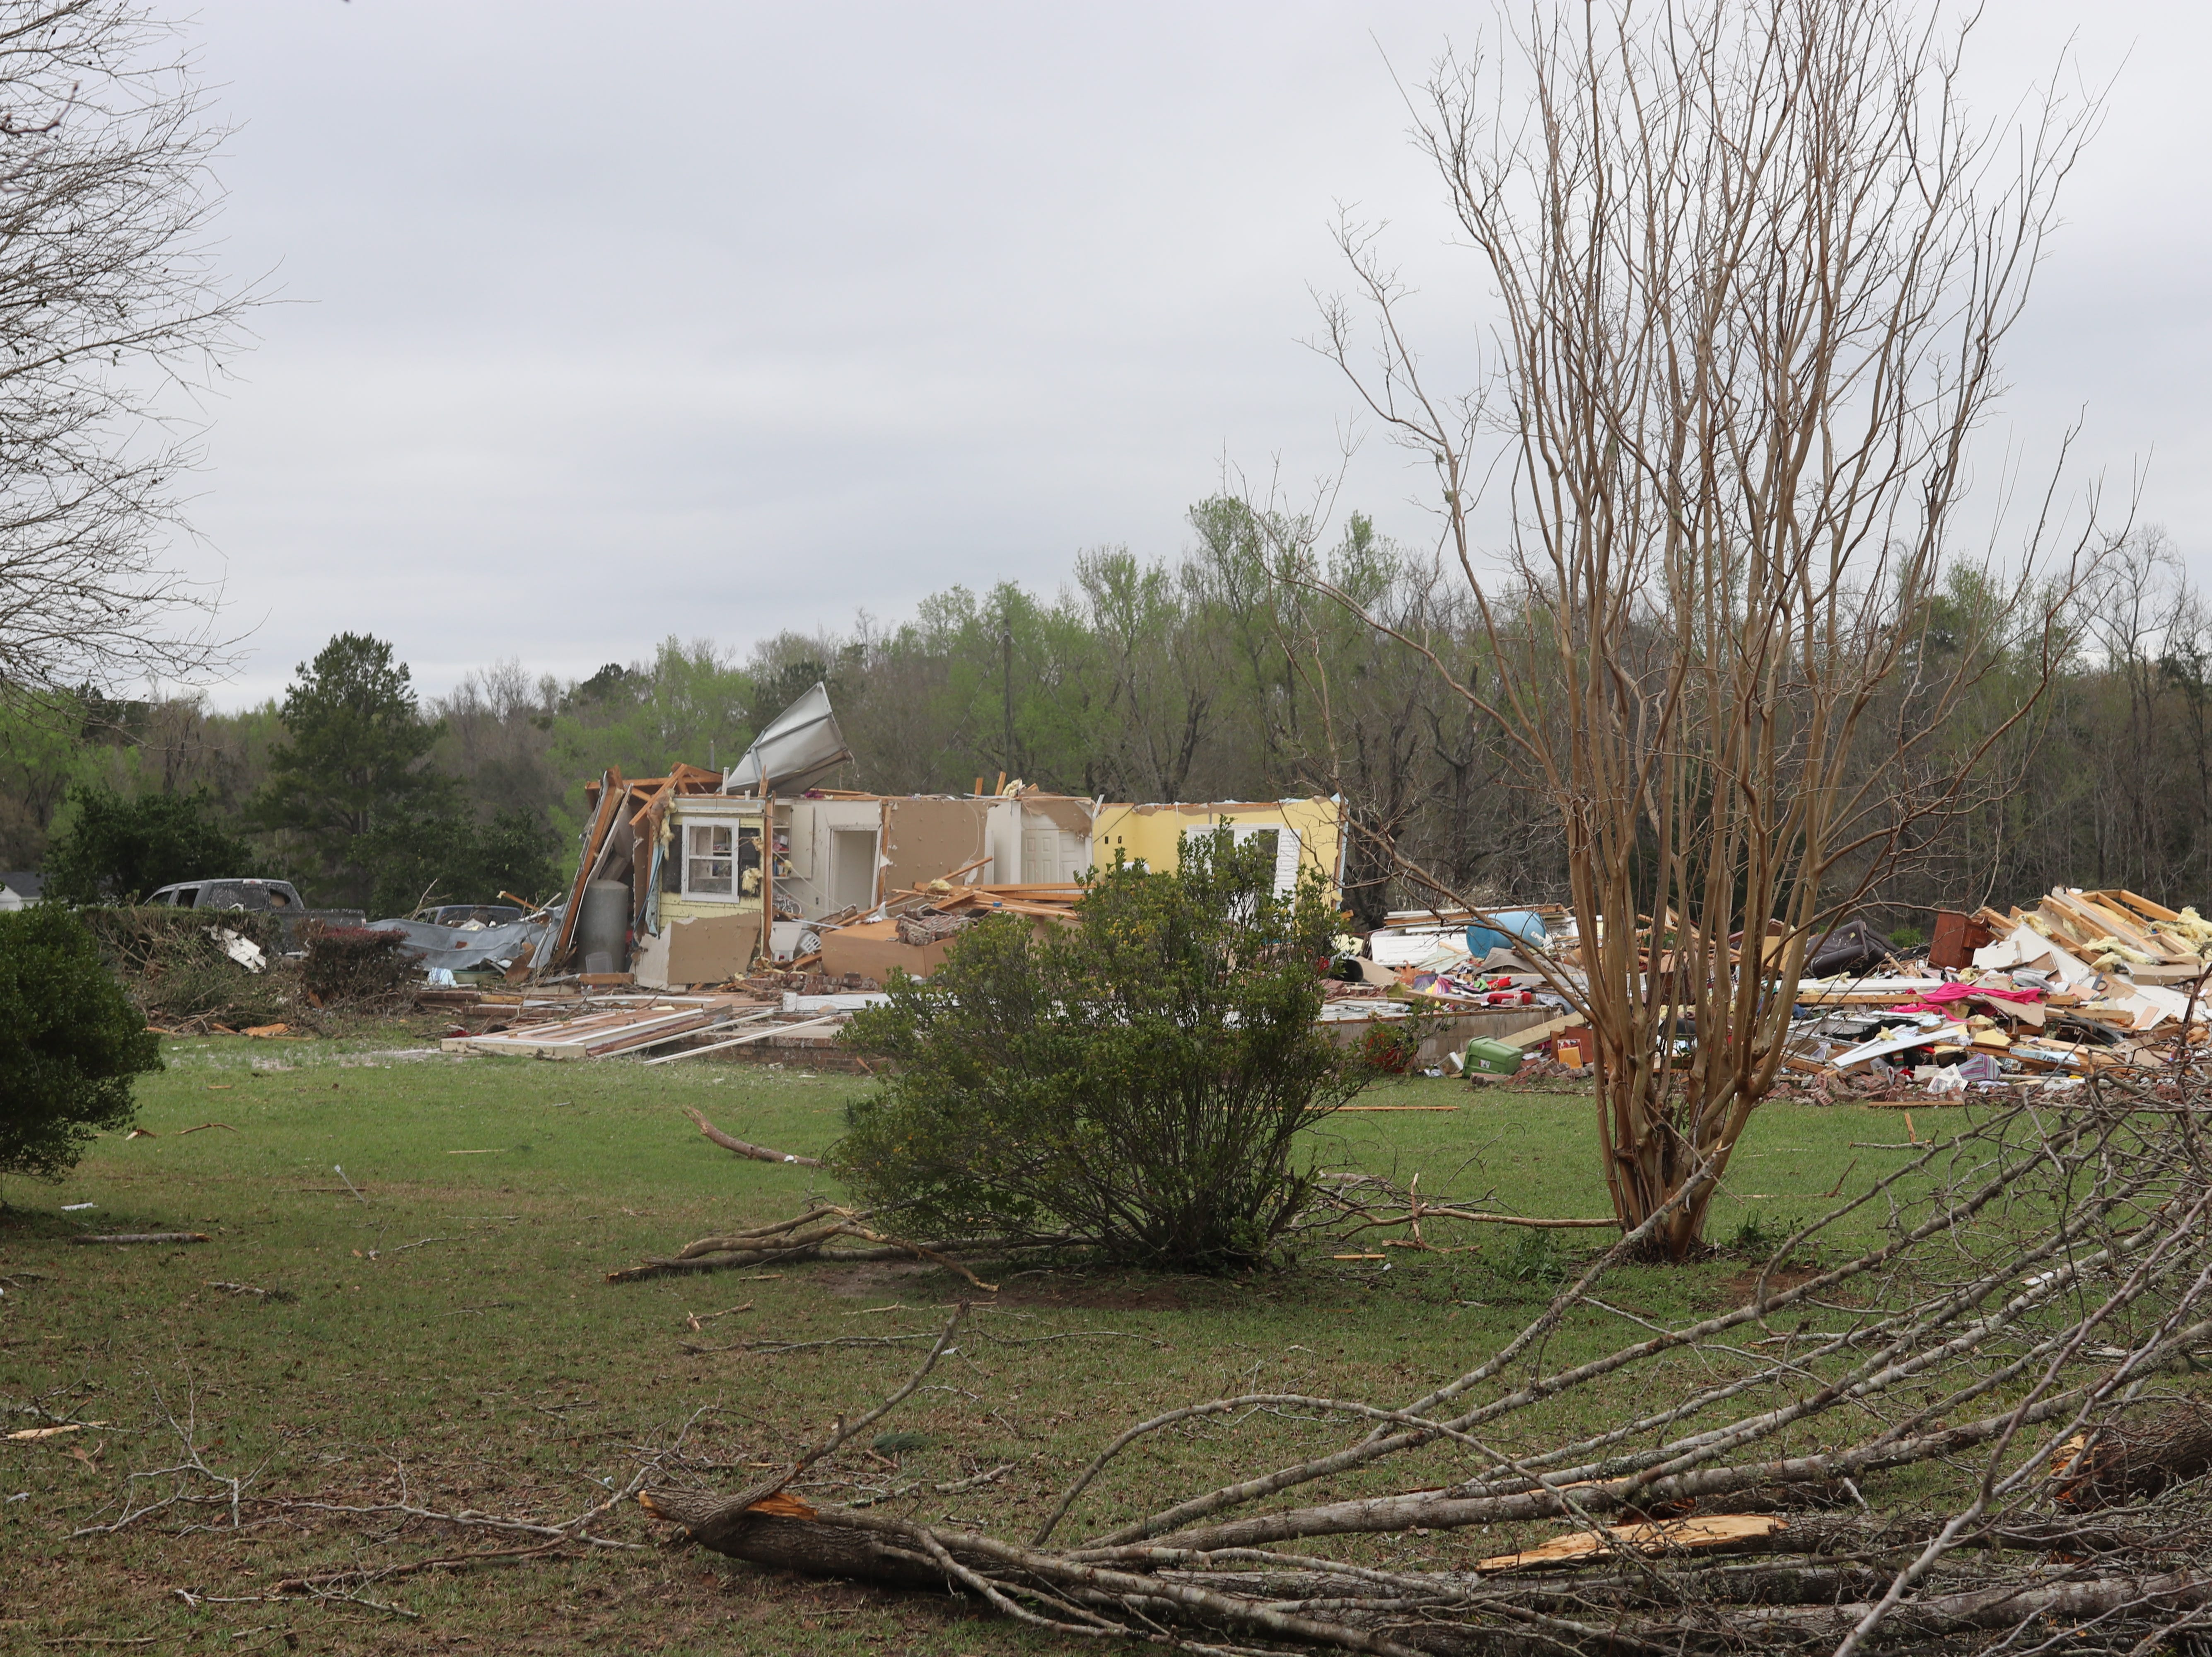 A house that was reduced to rubble in the Baum Community by a tornado Sunday March 3.